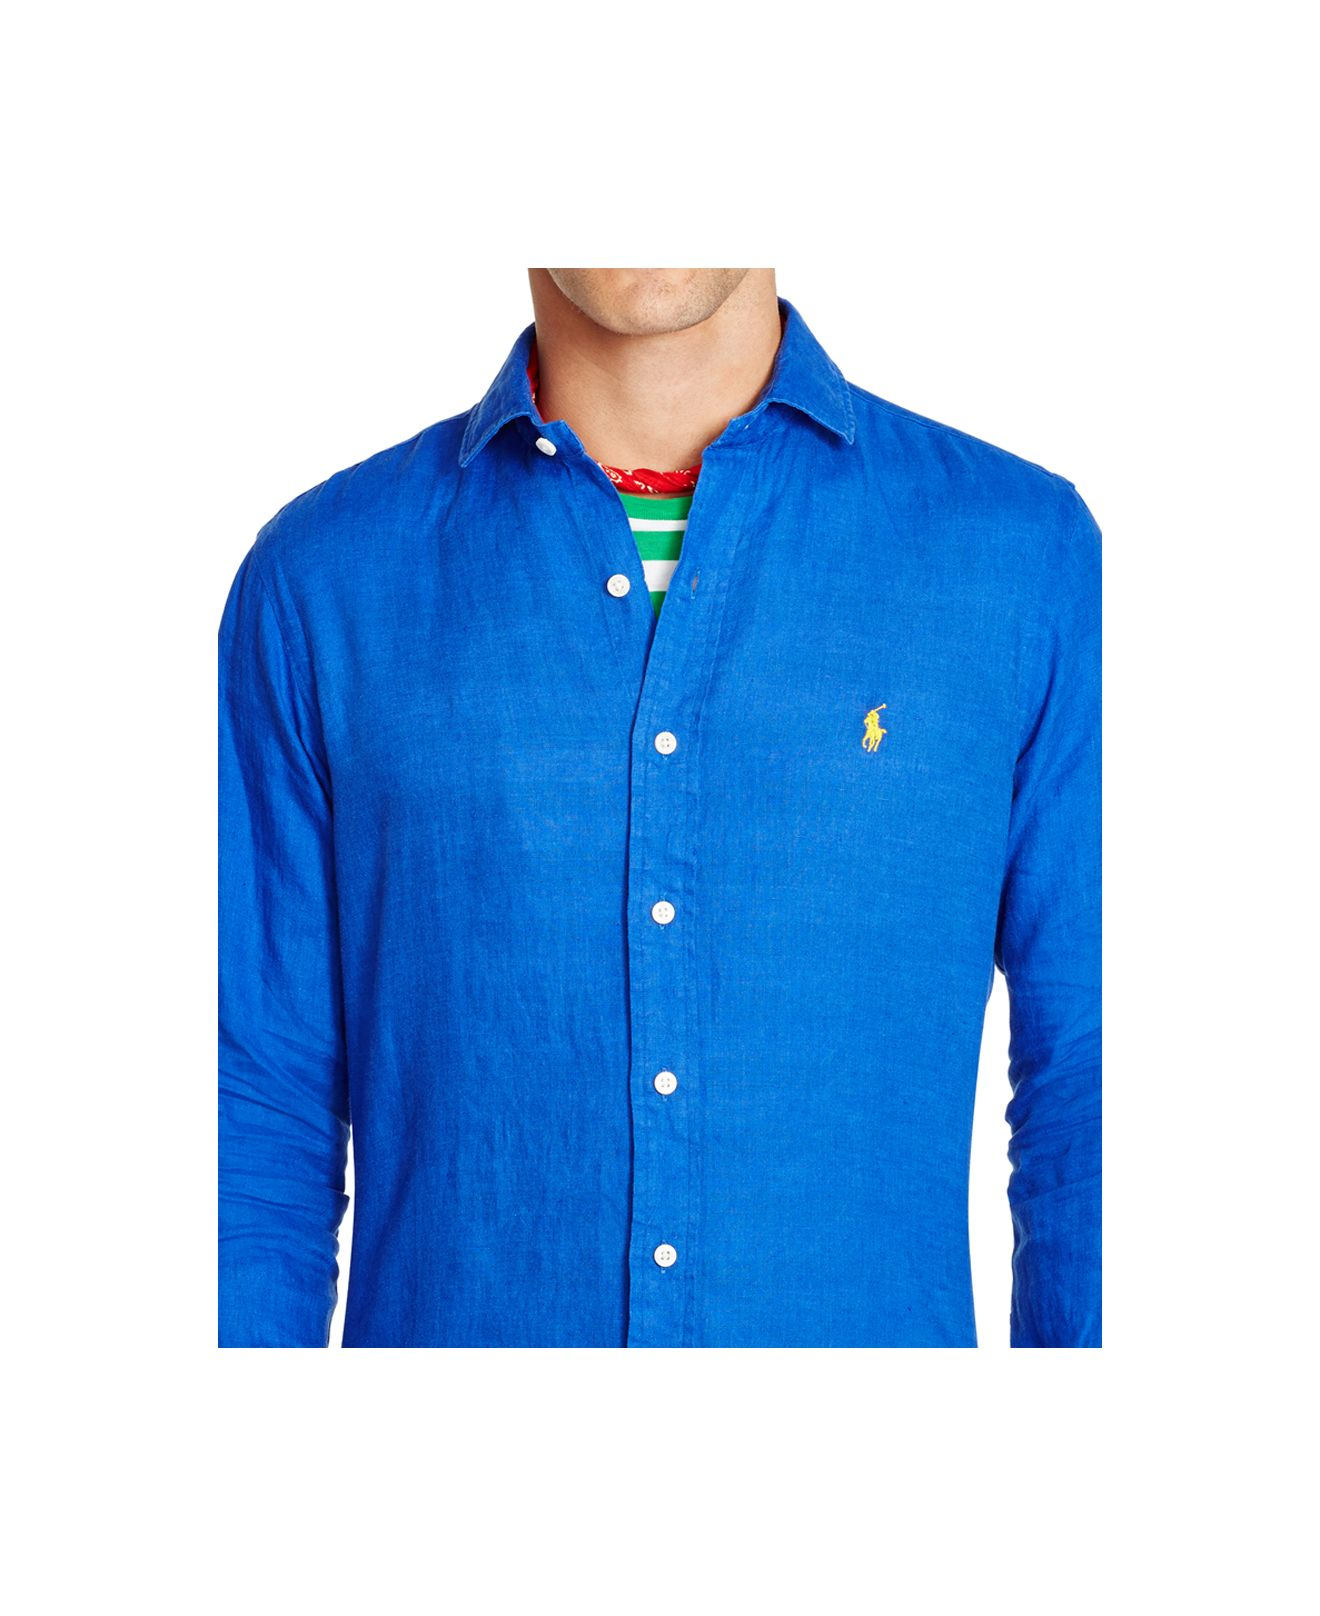 lyst polo ralph lauren men 39 s linen estate shirt in blue for men. Black Bedroom Furniture Sets. Home Design Ideas